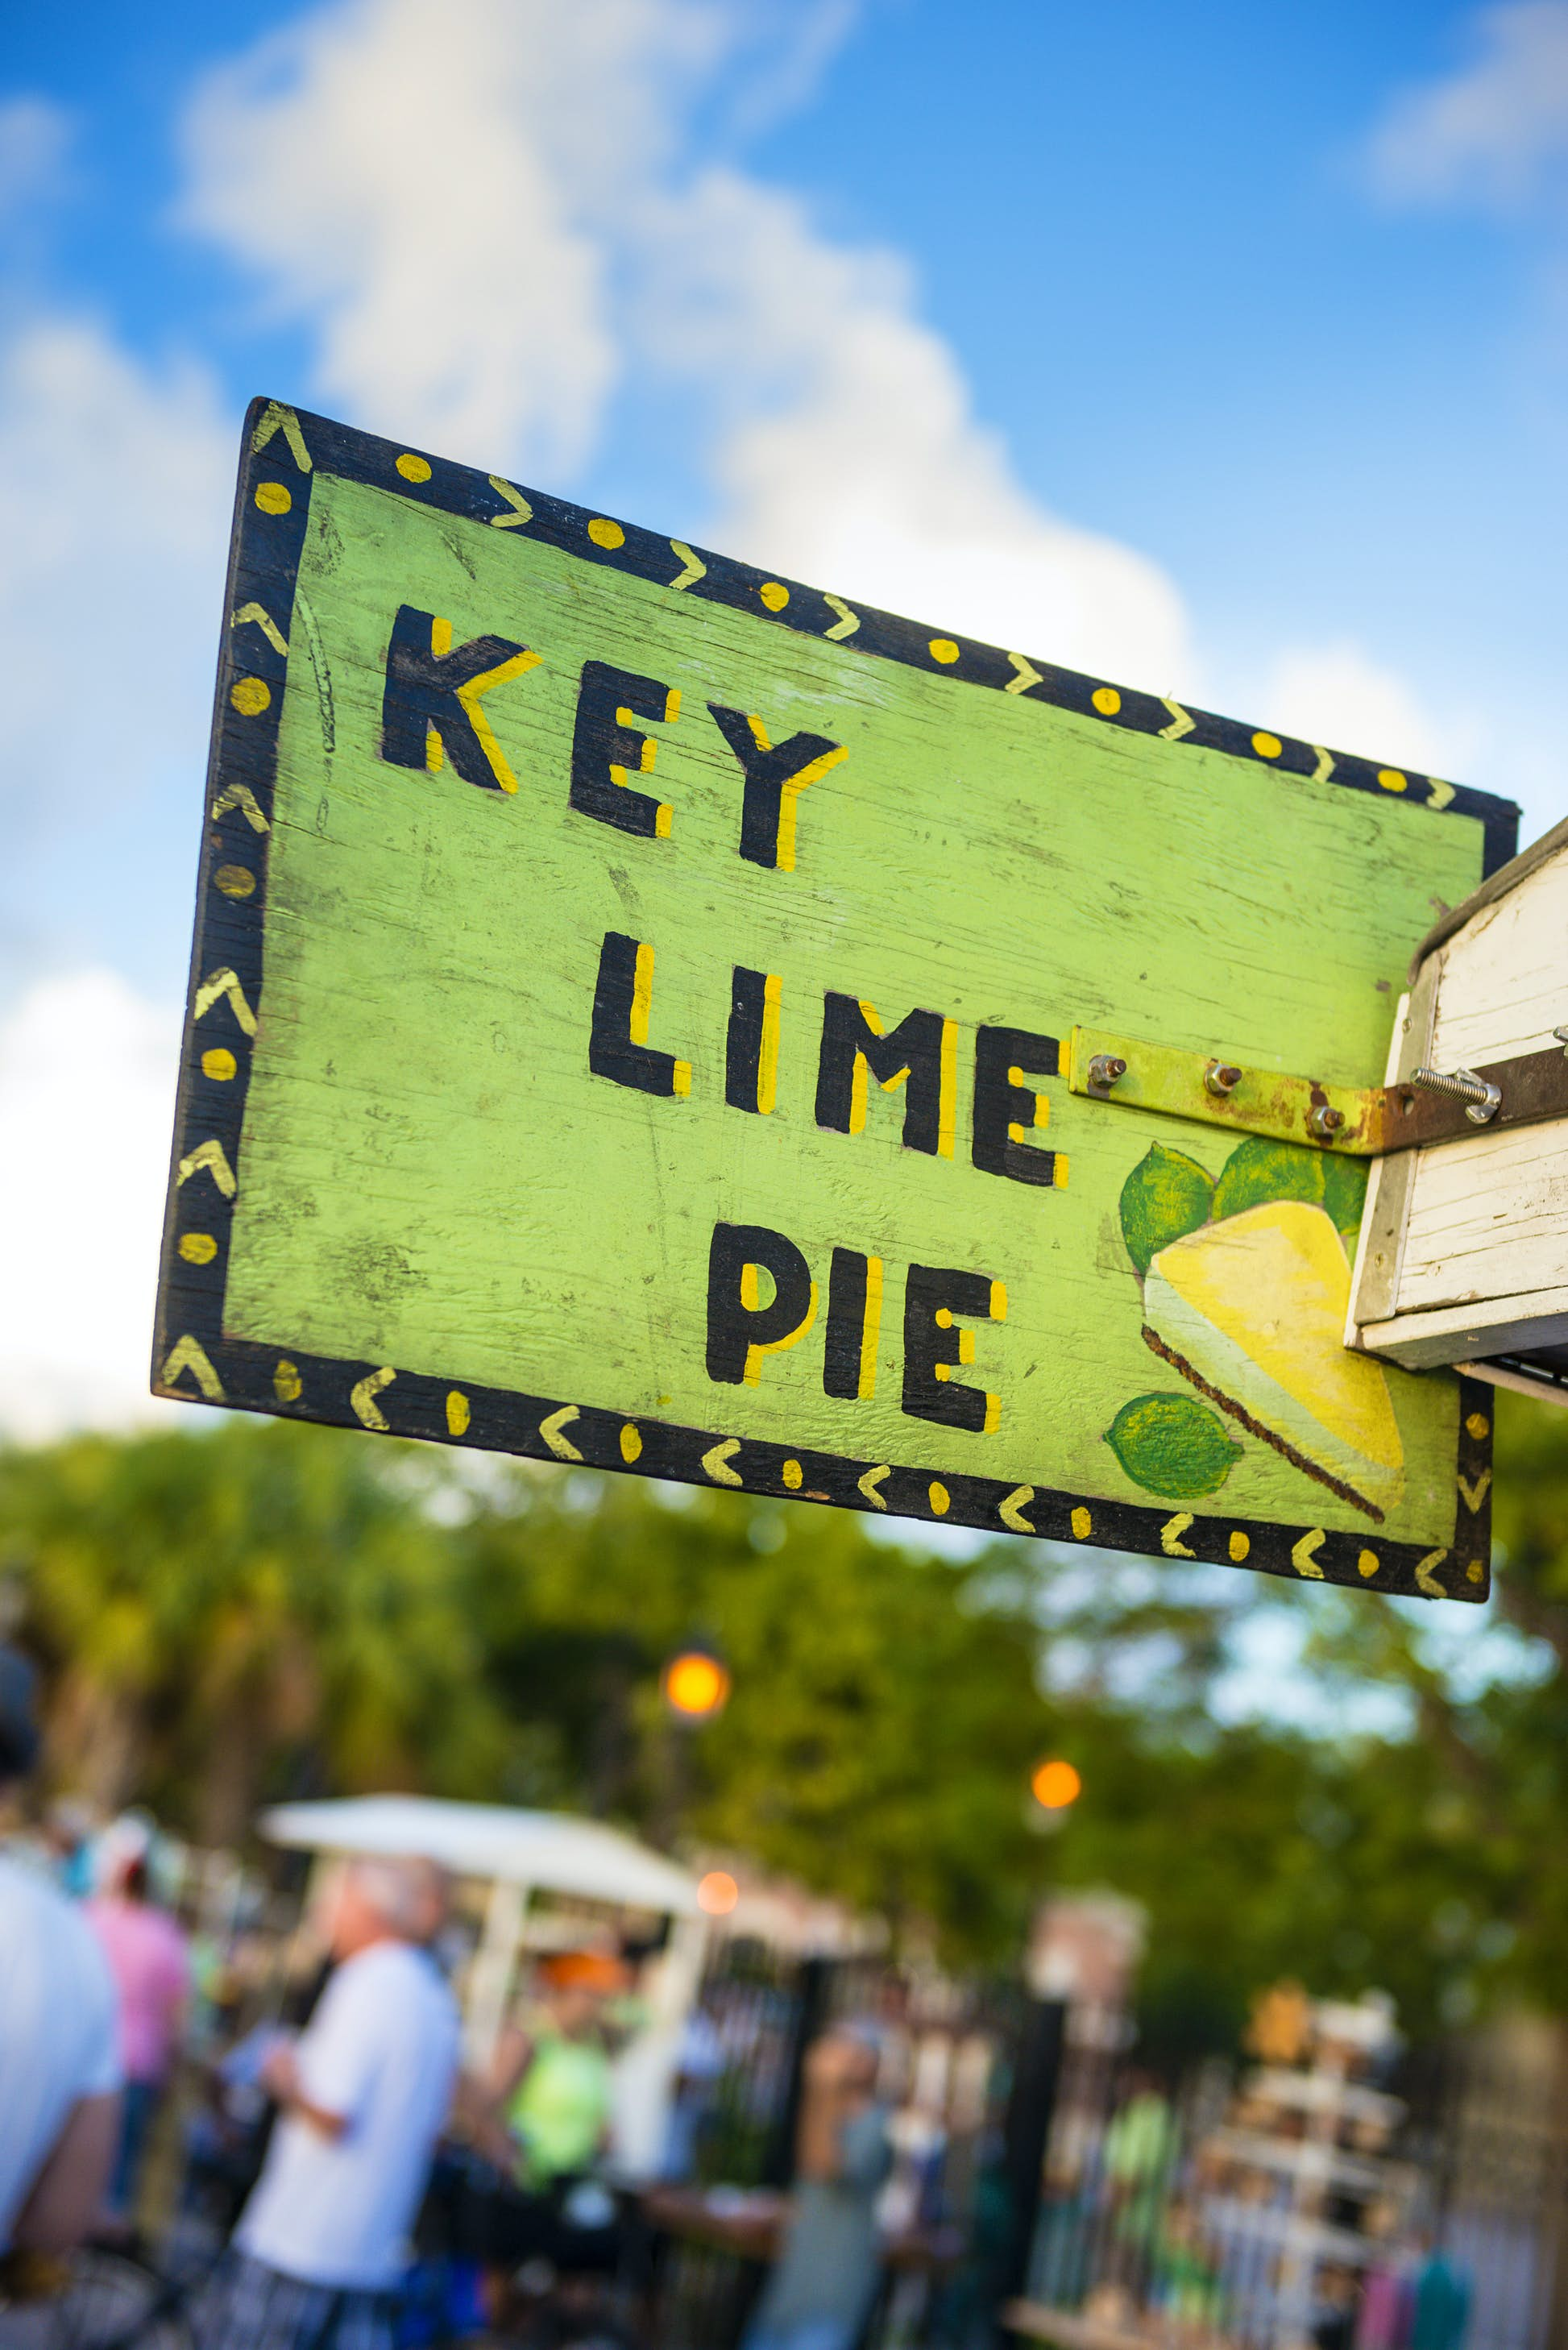 Many restaurants are open and the Key West speciality, key lime pie, is available © Justin Foulkes / Lonely Planet